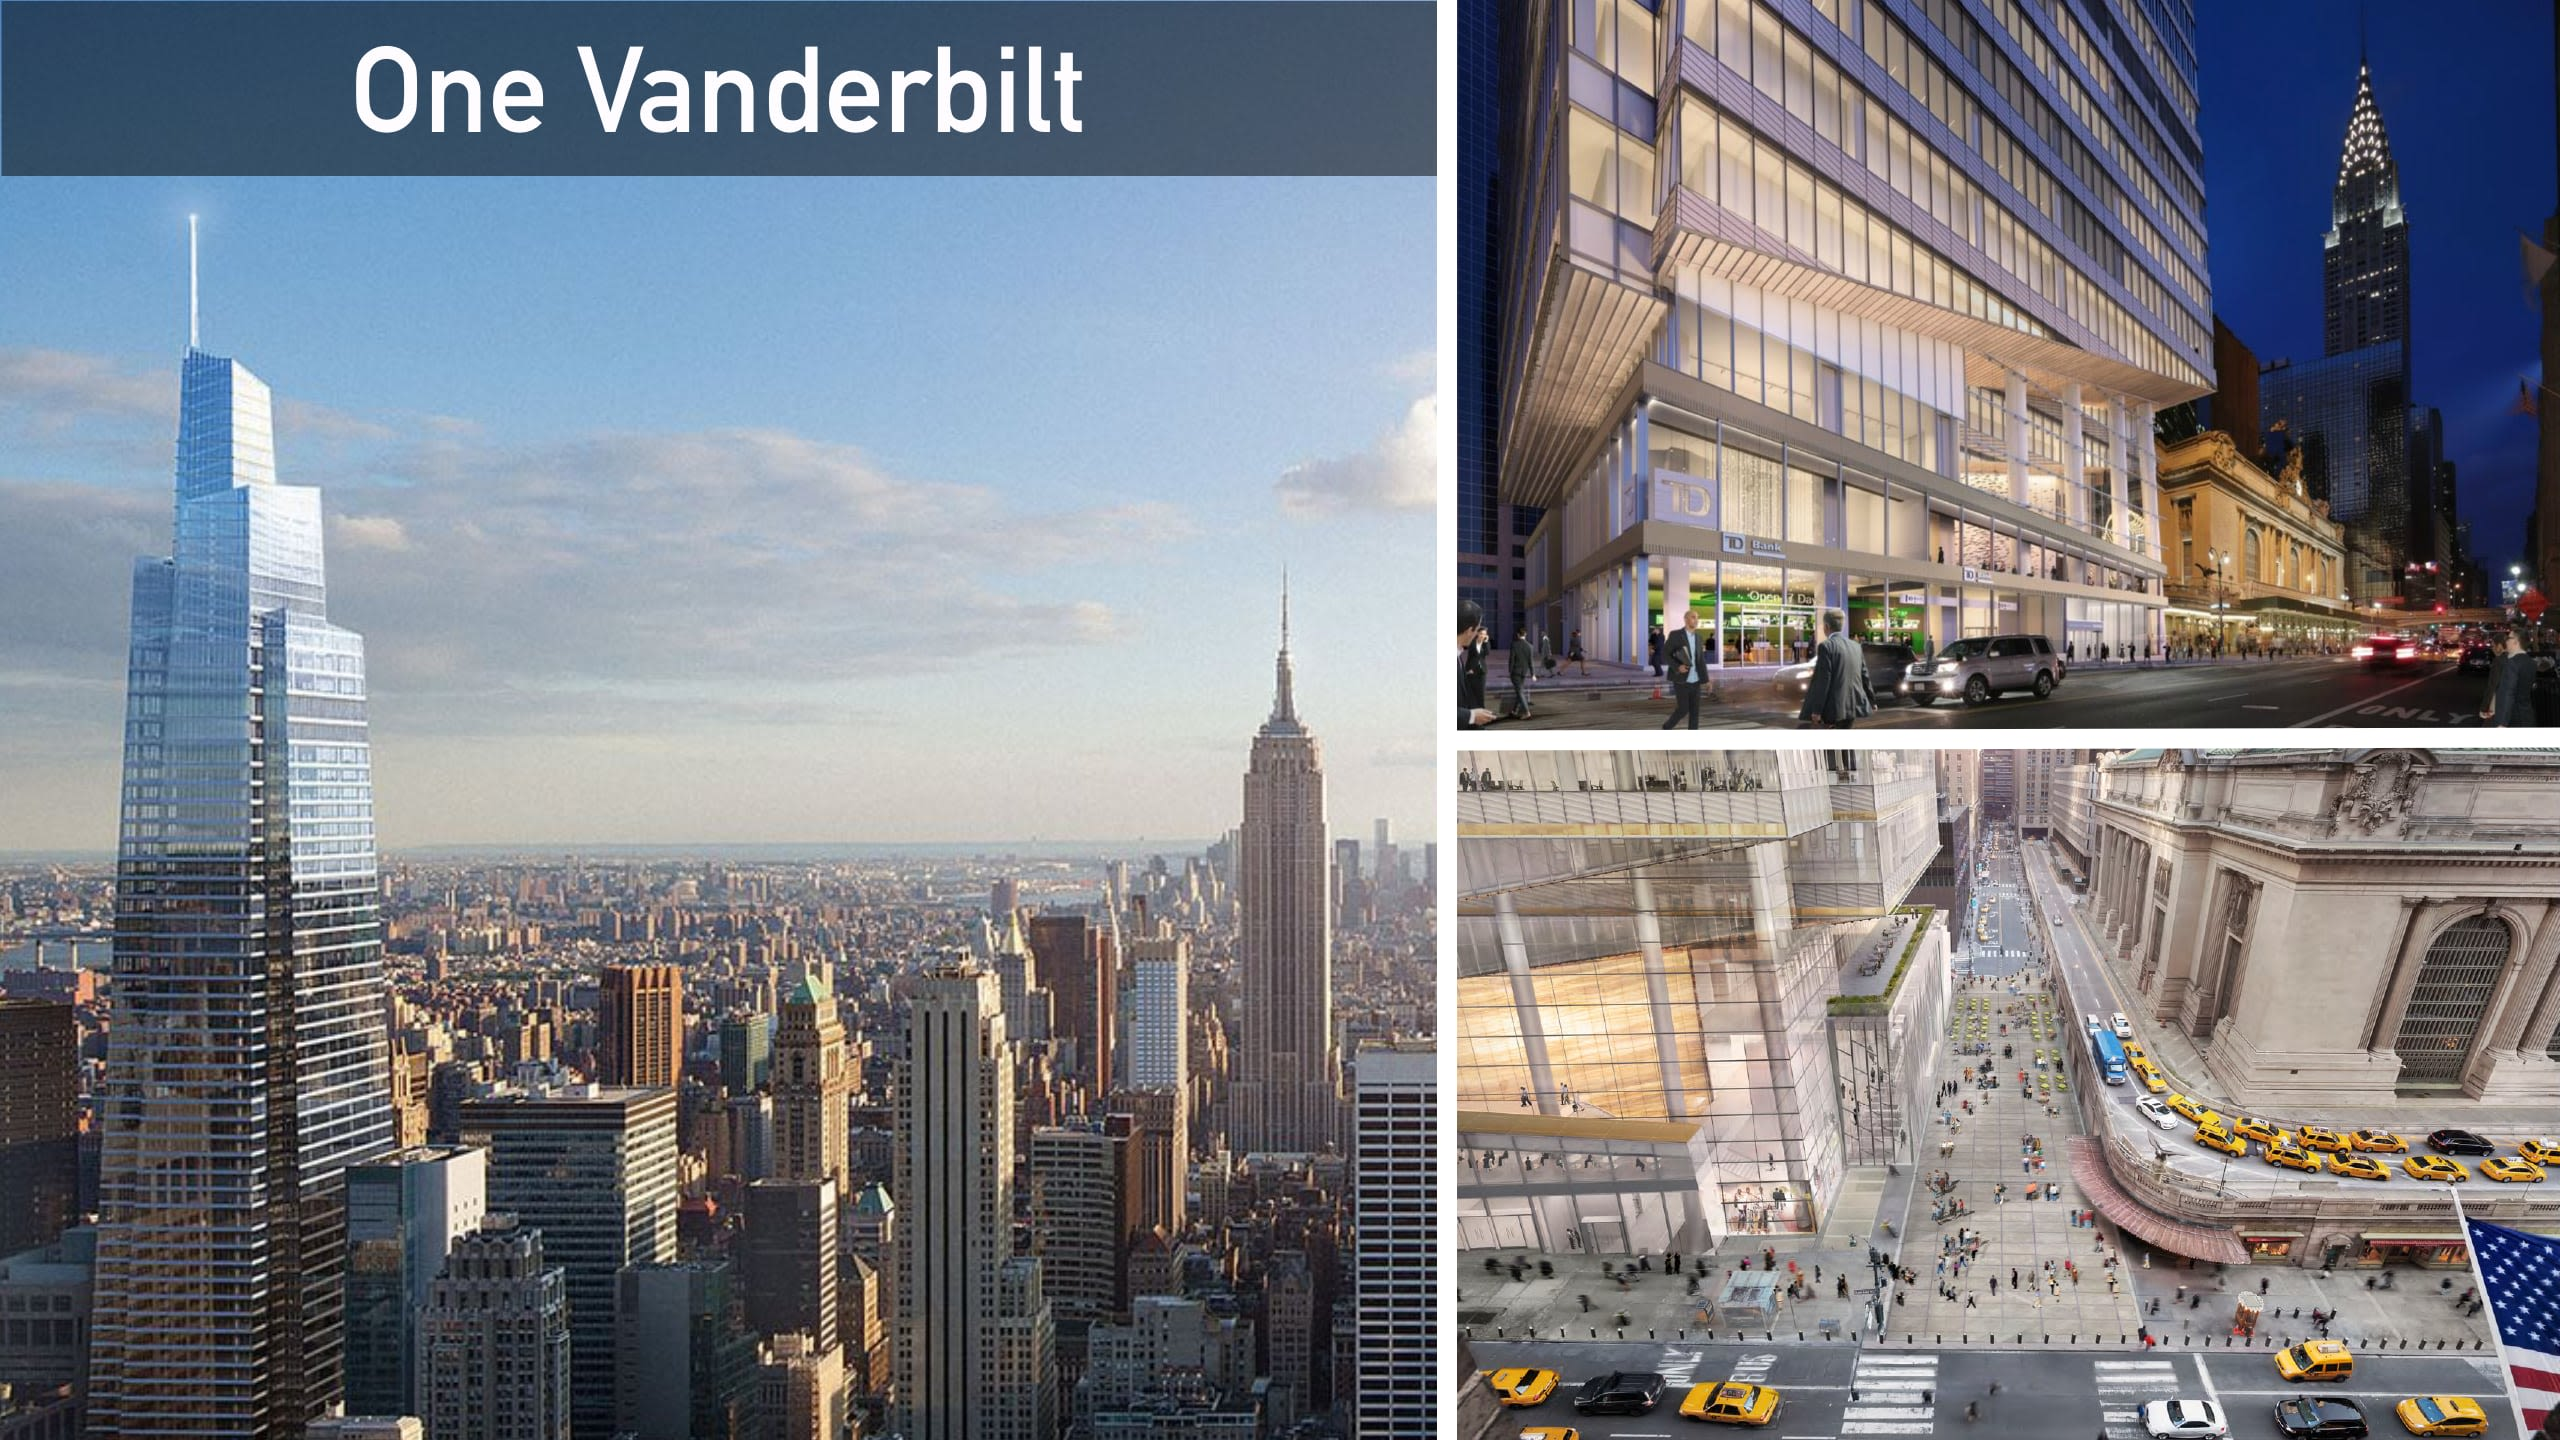 Right across the Grand Central very soon will rise One Vanderbilt tower.